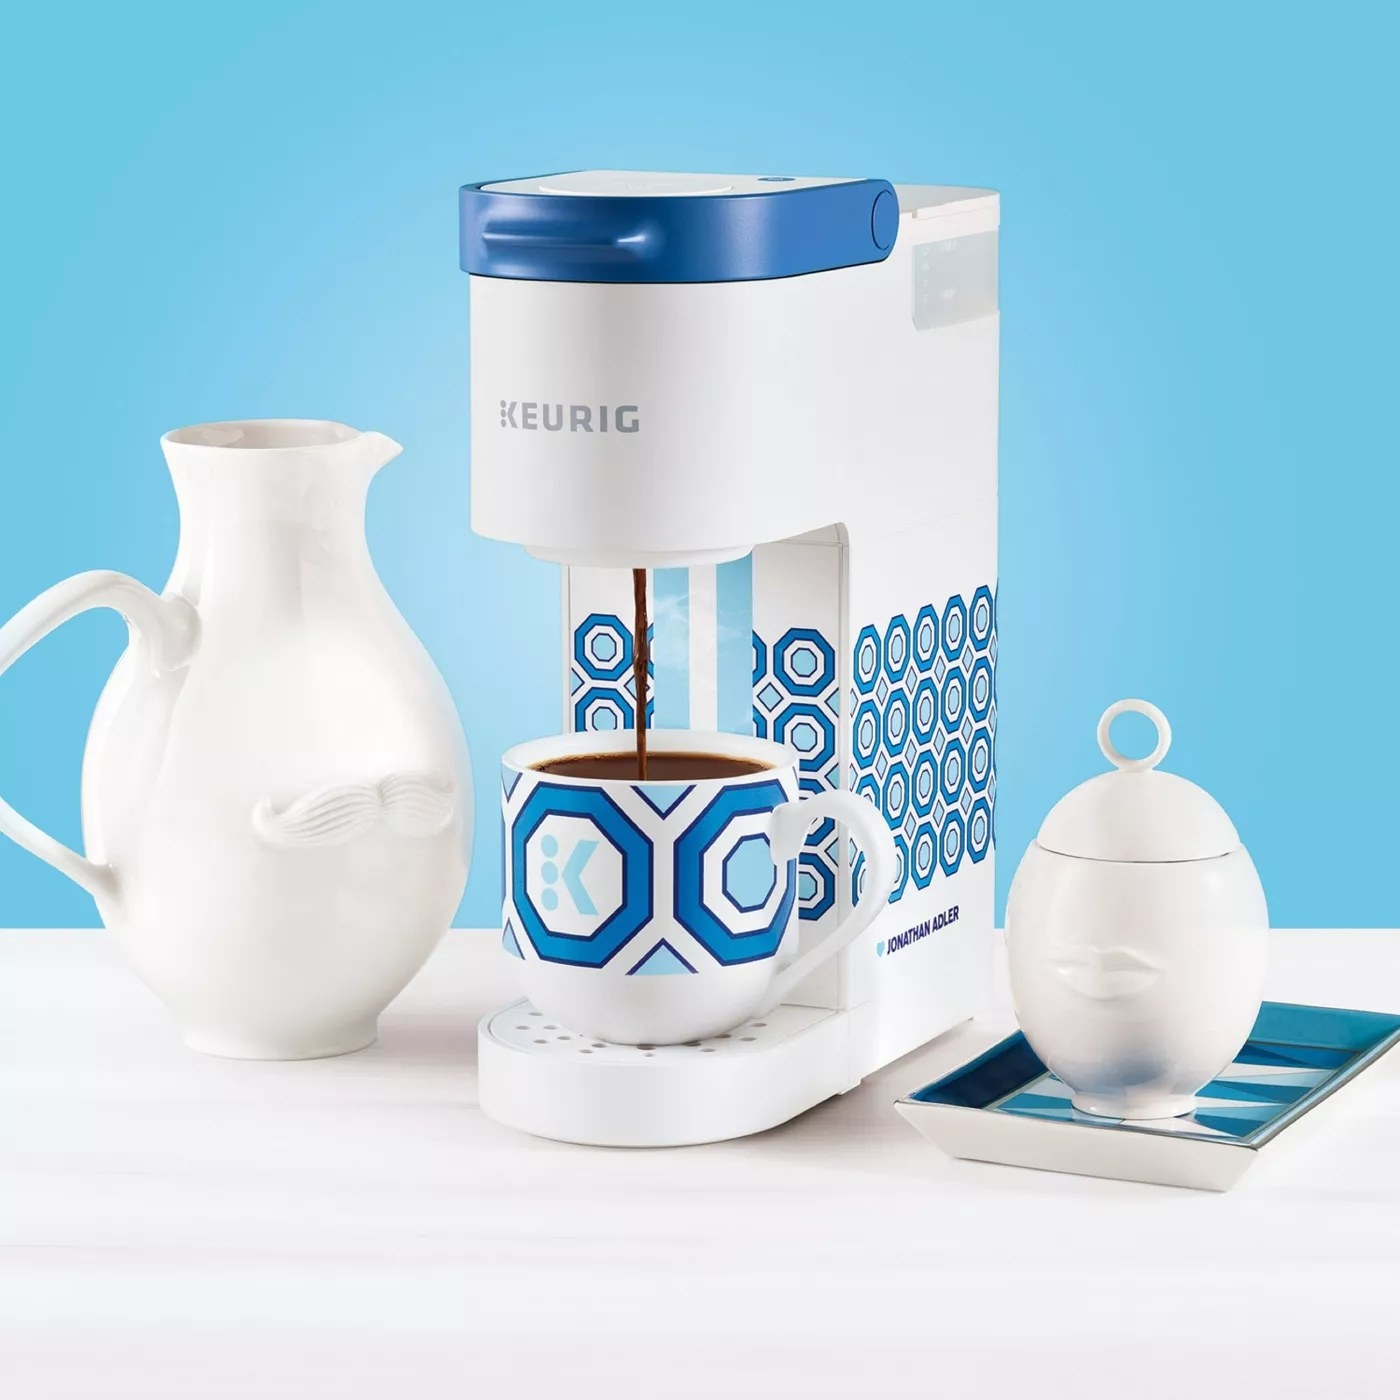 The white-and-blue, hexagon-patterned Keurig coffee maker and the matching coffee mug